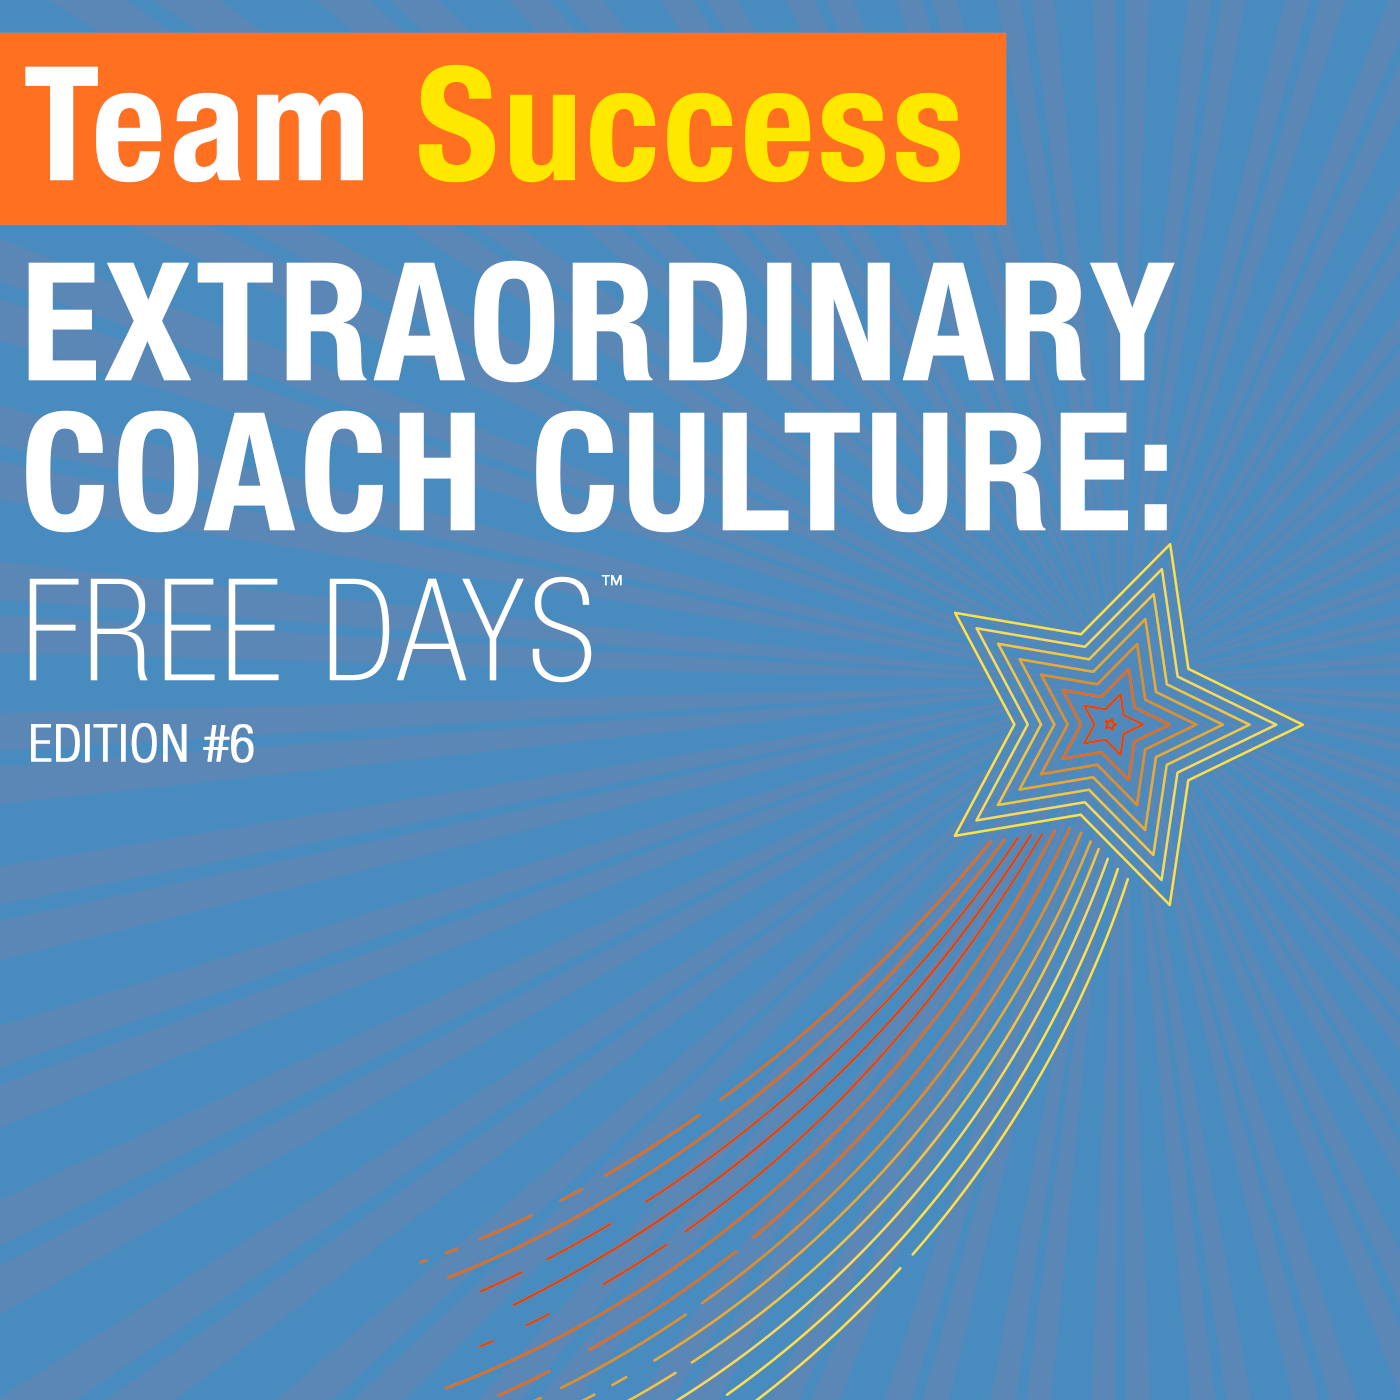 Extraordinary Coach Culture: Free Days™